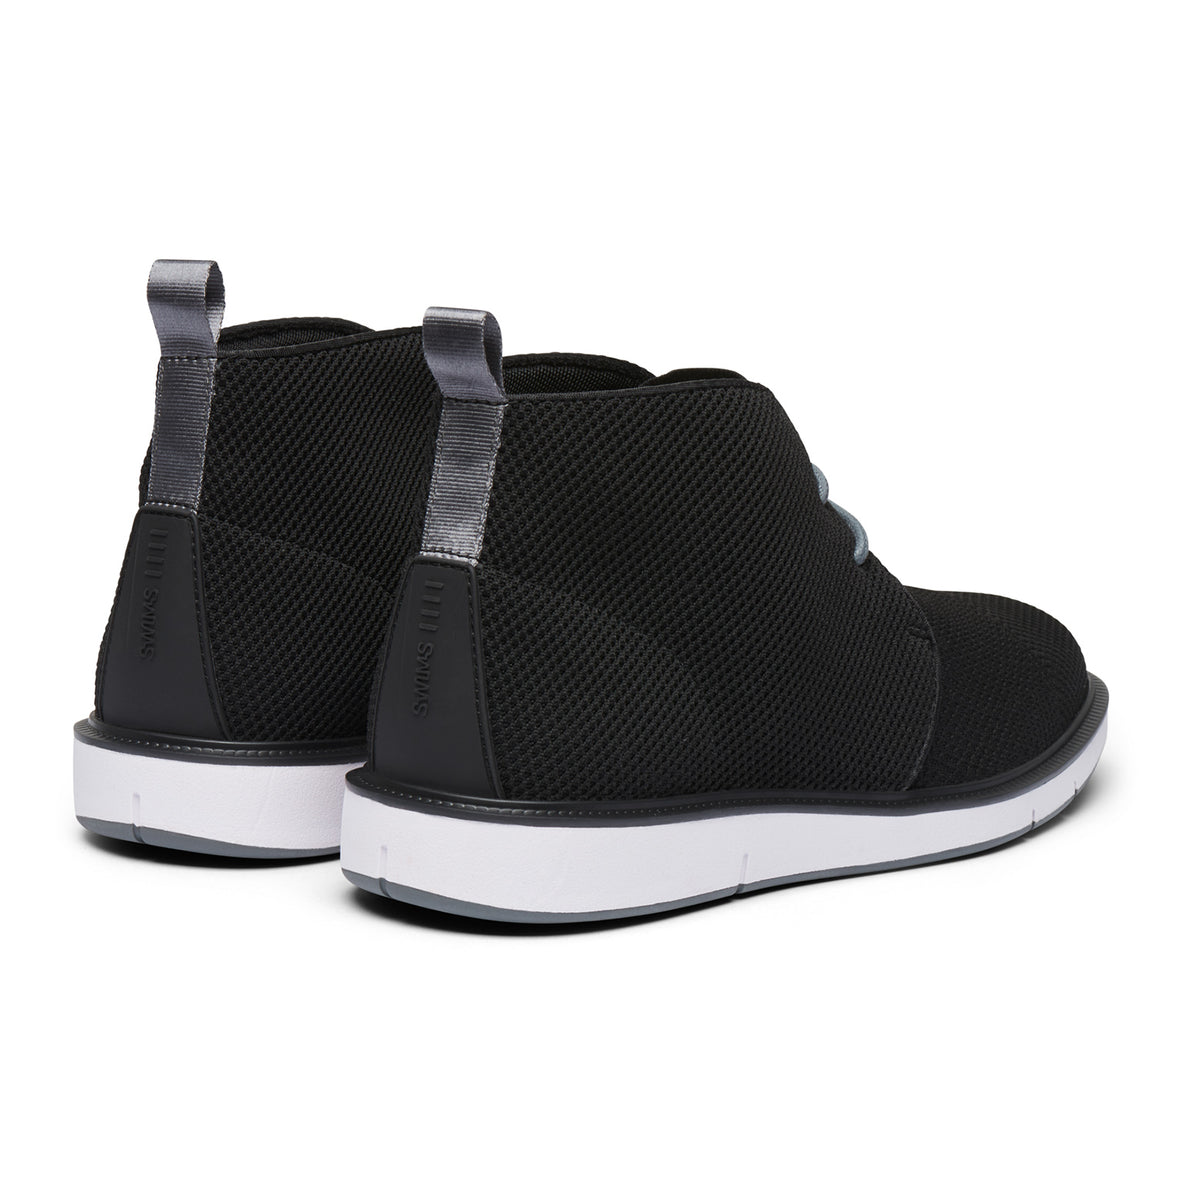 Motion Knit Chukka - background::white,variant::Black/Gray